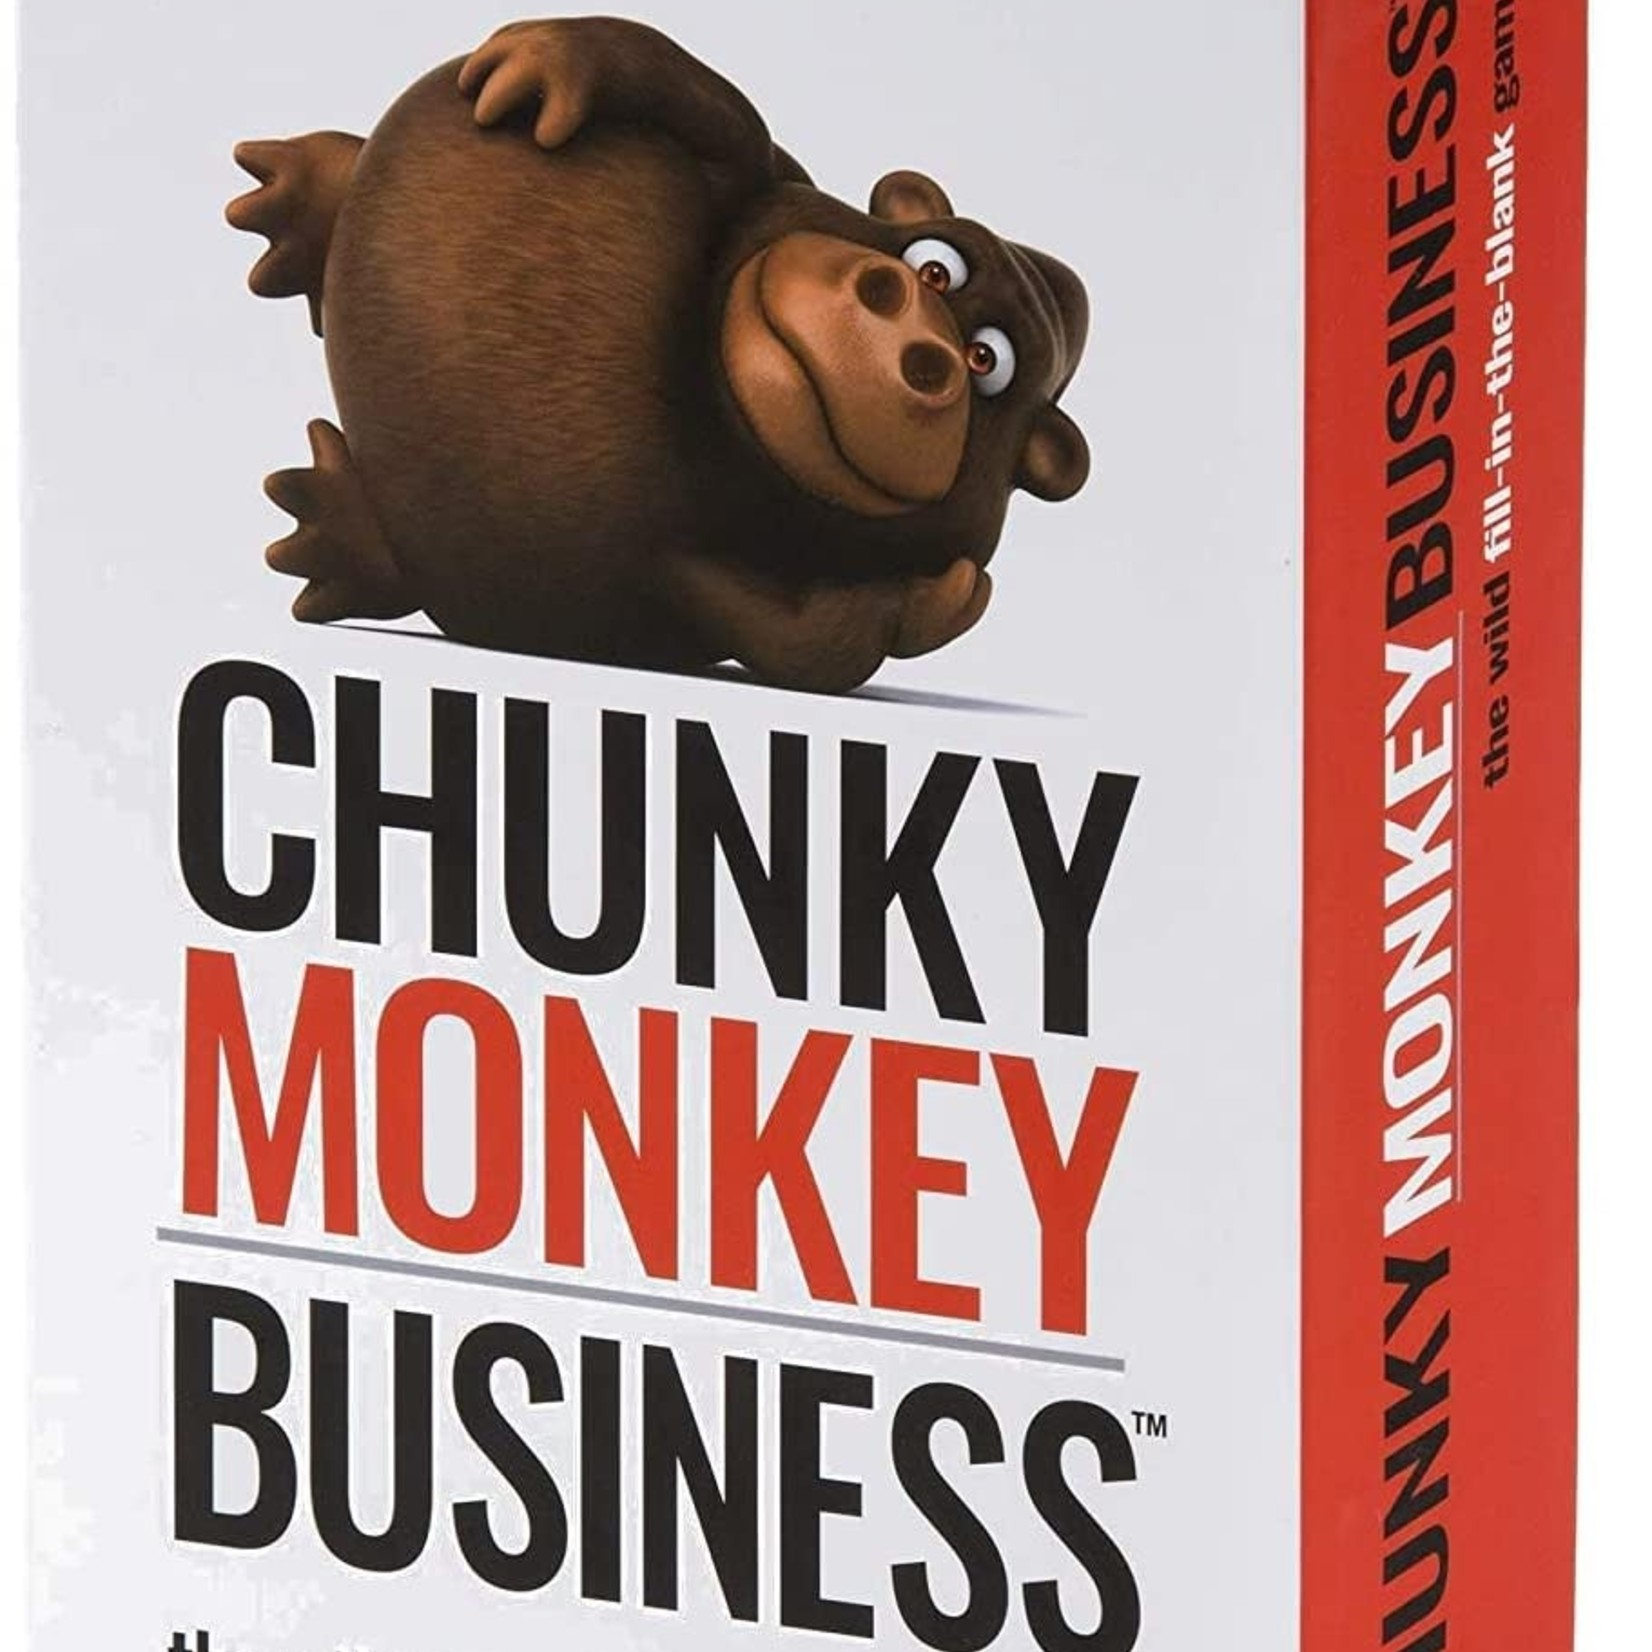 The Good Game Company Chunky Monkey Business